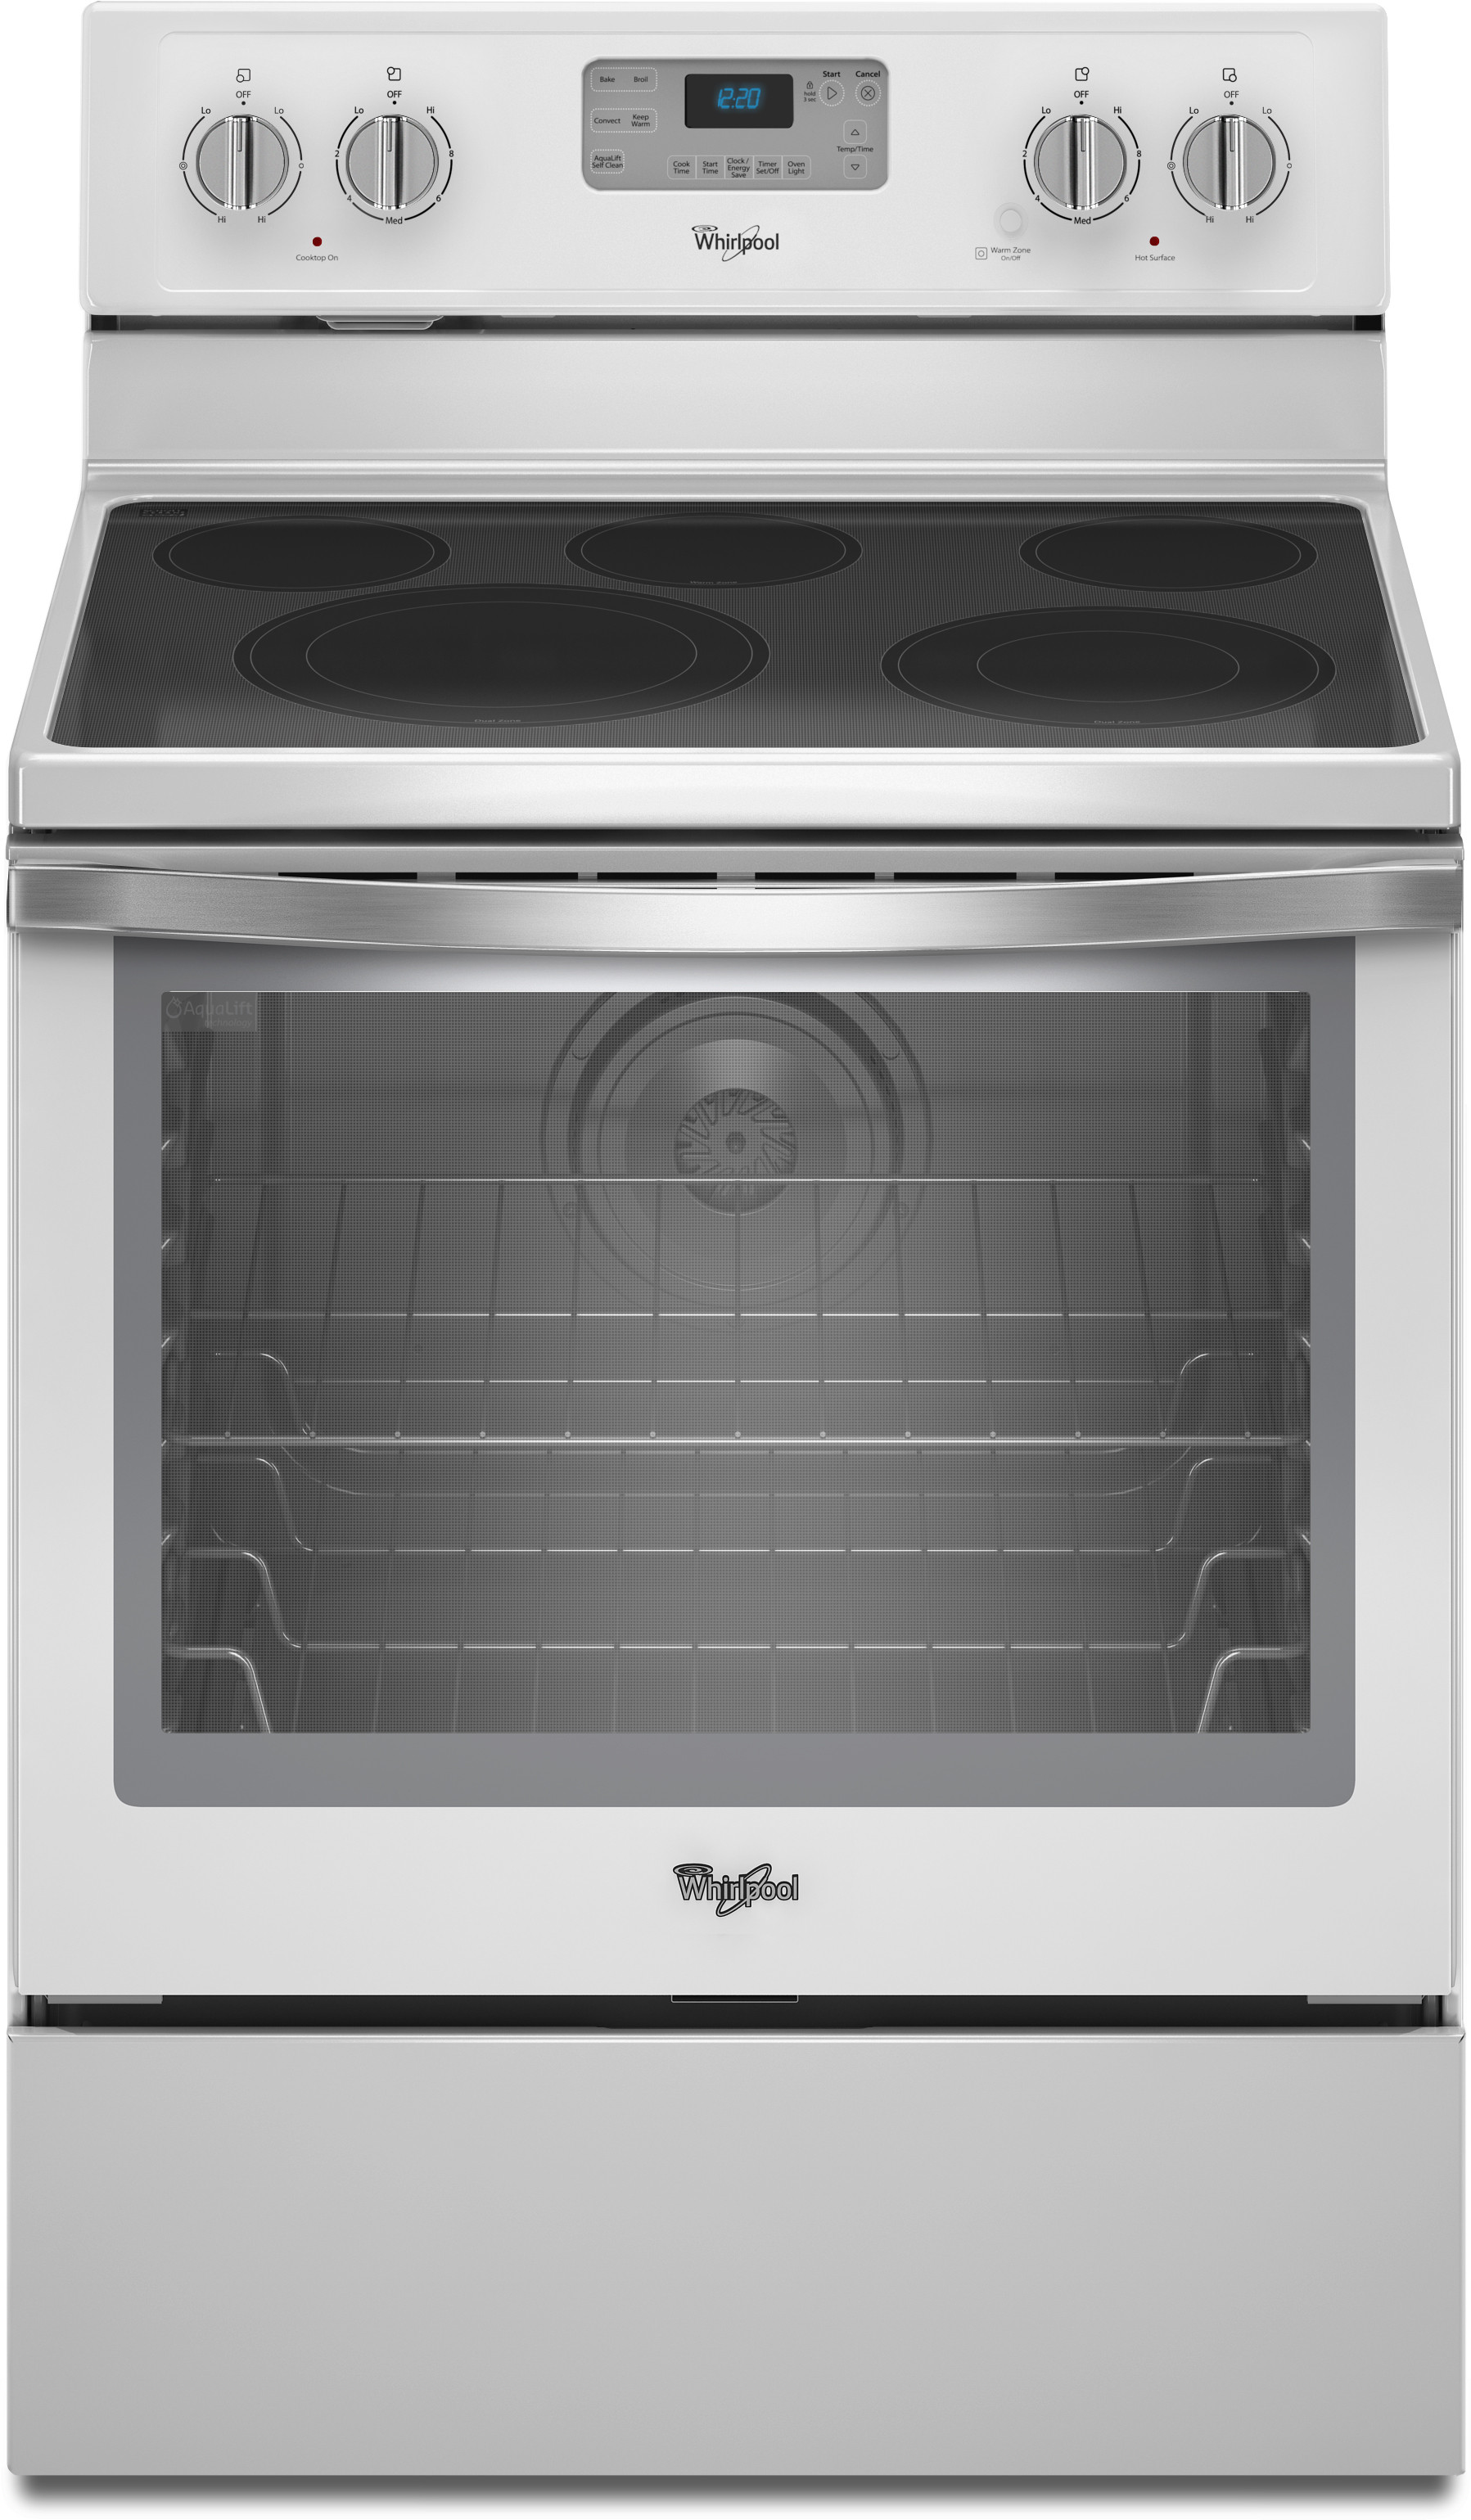 Whirlpool white ice electric range reviews - Whirlpool White Ice Electric Range Reviews 9